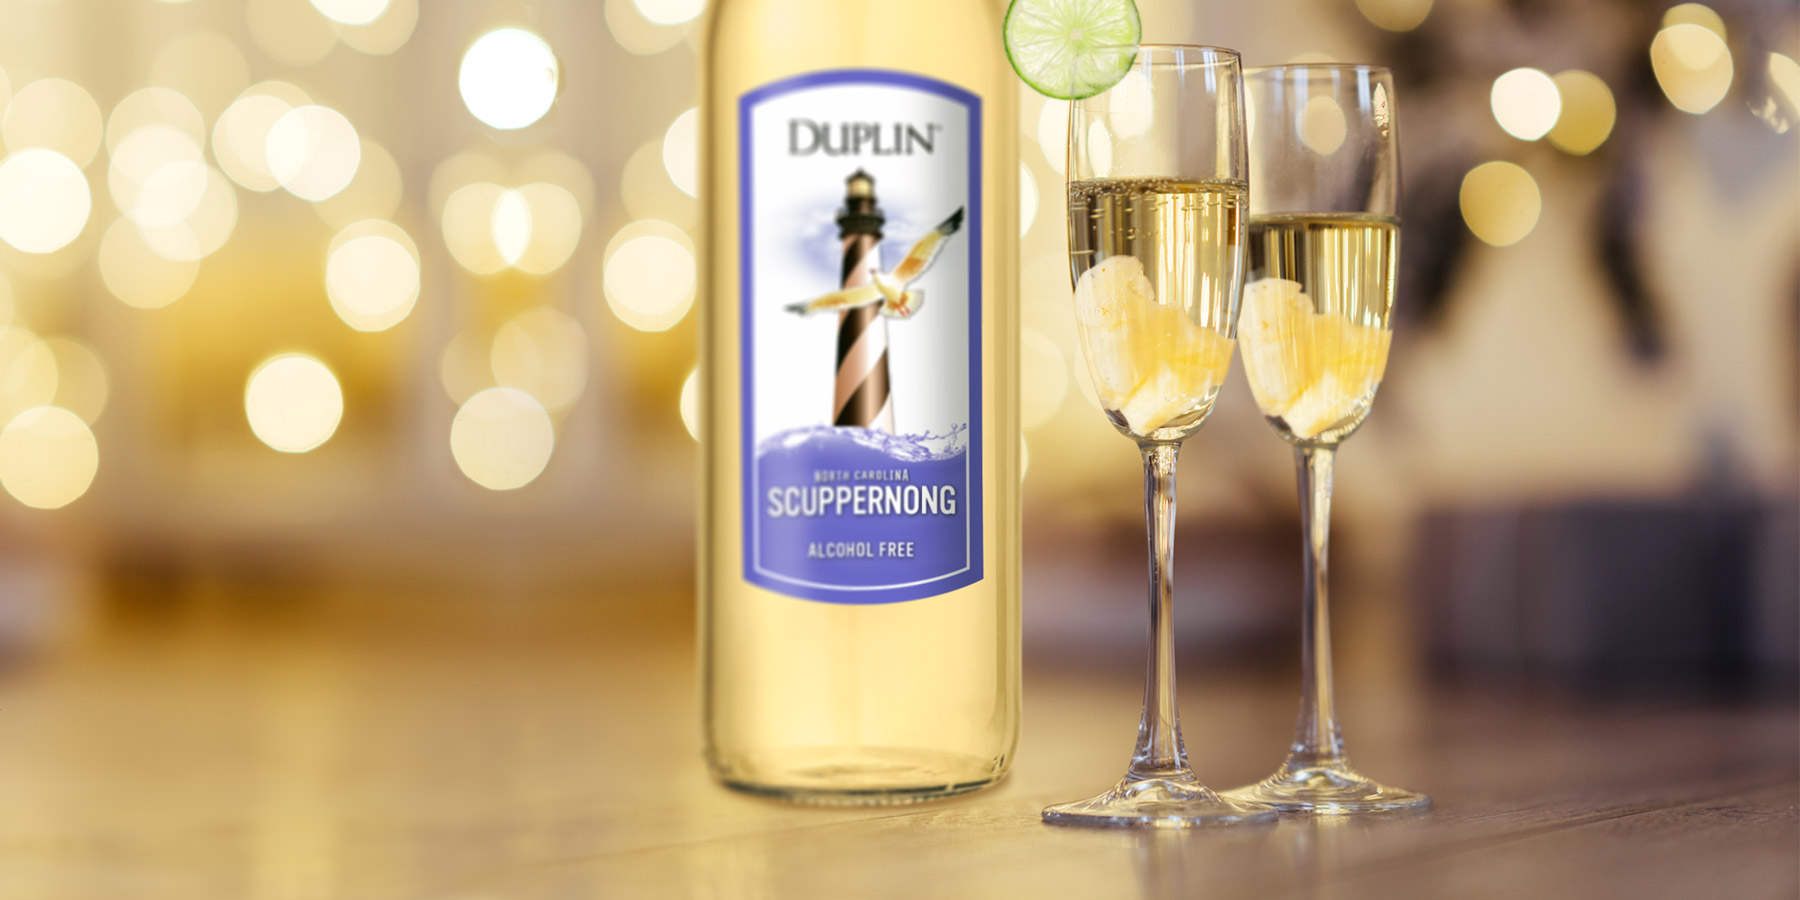 This Pineapple Scuppernong Spritzer made with Duplin alcohol-free wine is a refreshing sparkler.When you'r ready to add a little kick, simply replace Scuppernong alcohol-free wine with Duplin's regular Scuppernong wine.